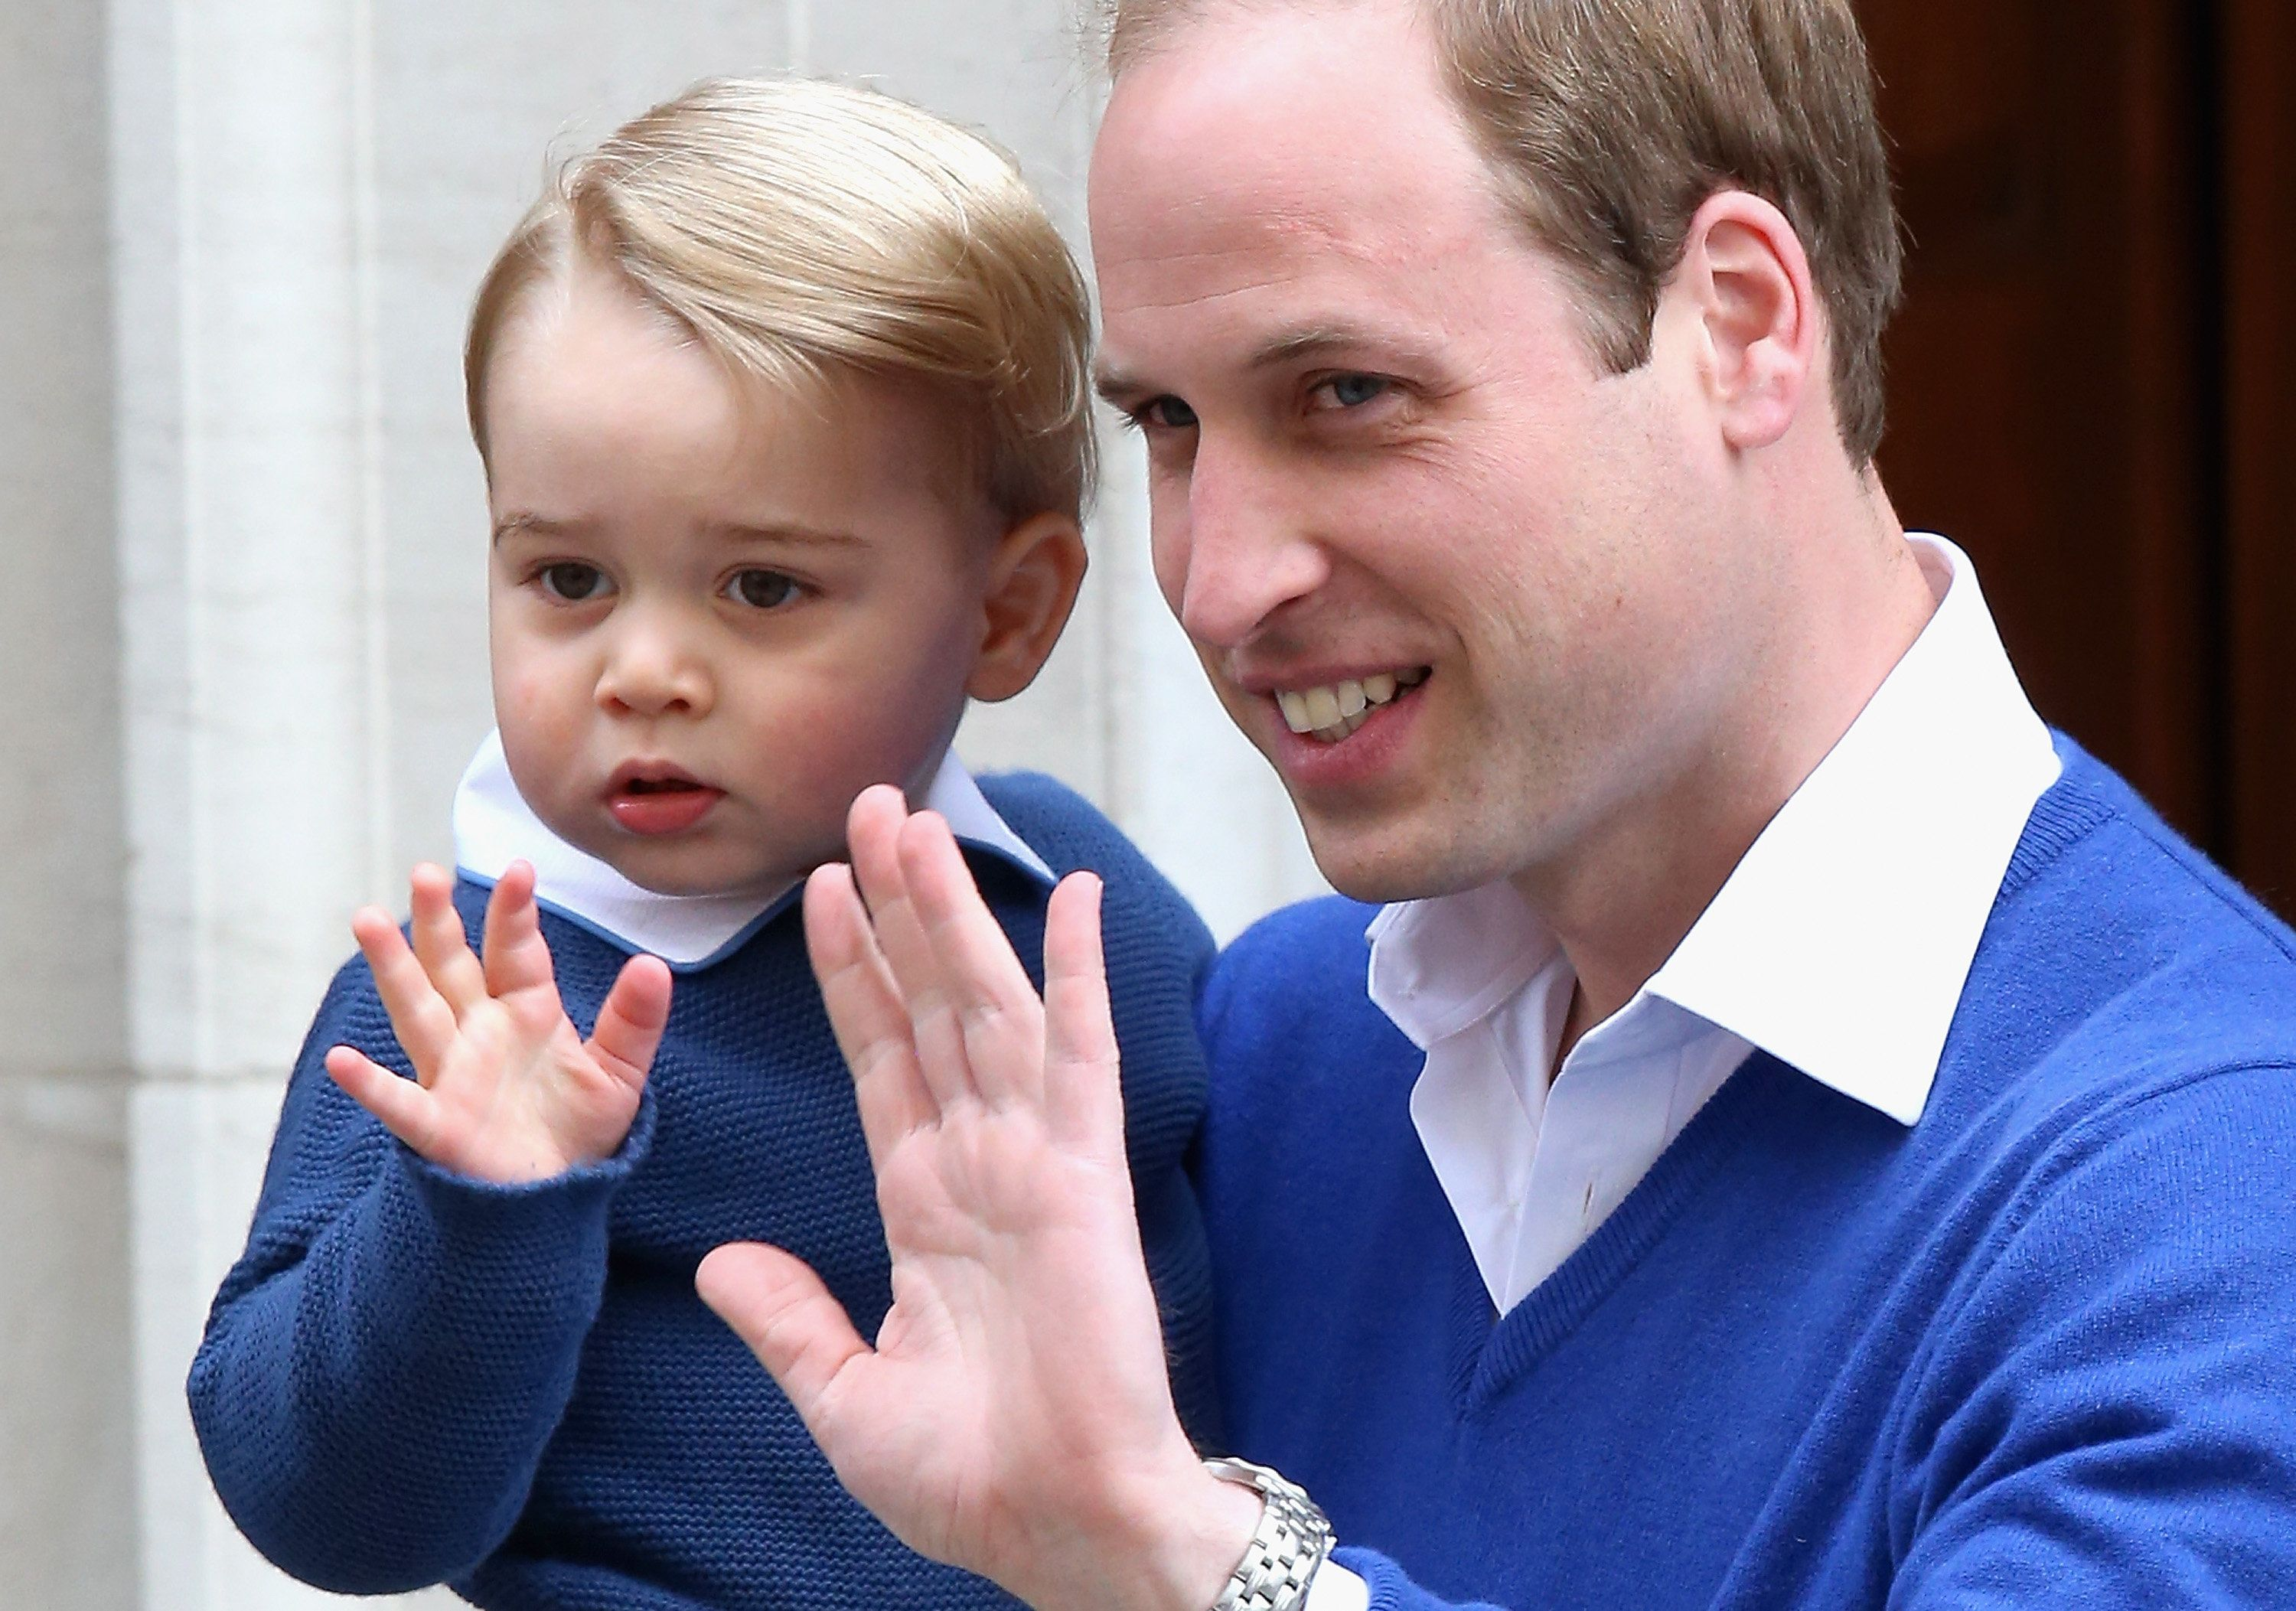 Prince William and Prince Georgeat St. Mary's hospitalafter Princess Charlotte's birth on May 2, 2015, in London,